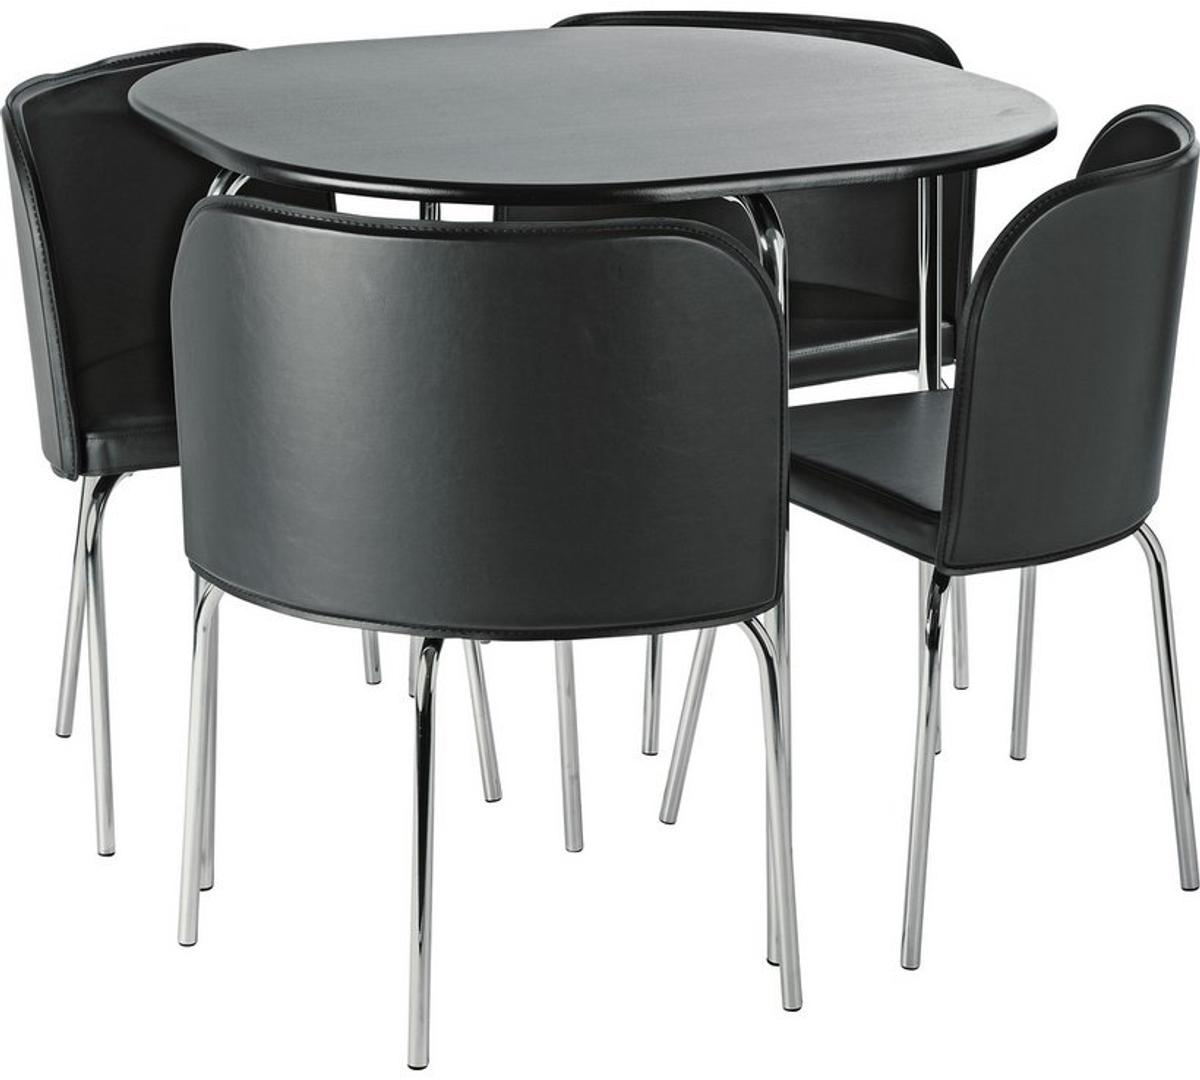 Argos Table And Chairs In Sale: Argos Space Saving Table And Chairs